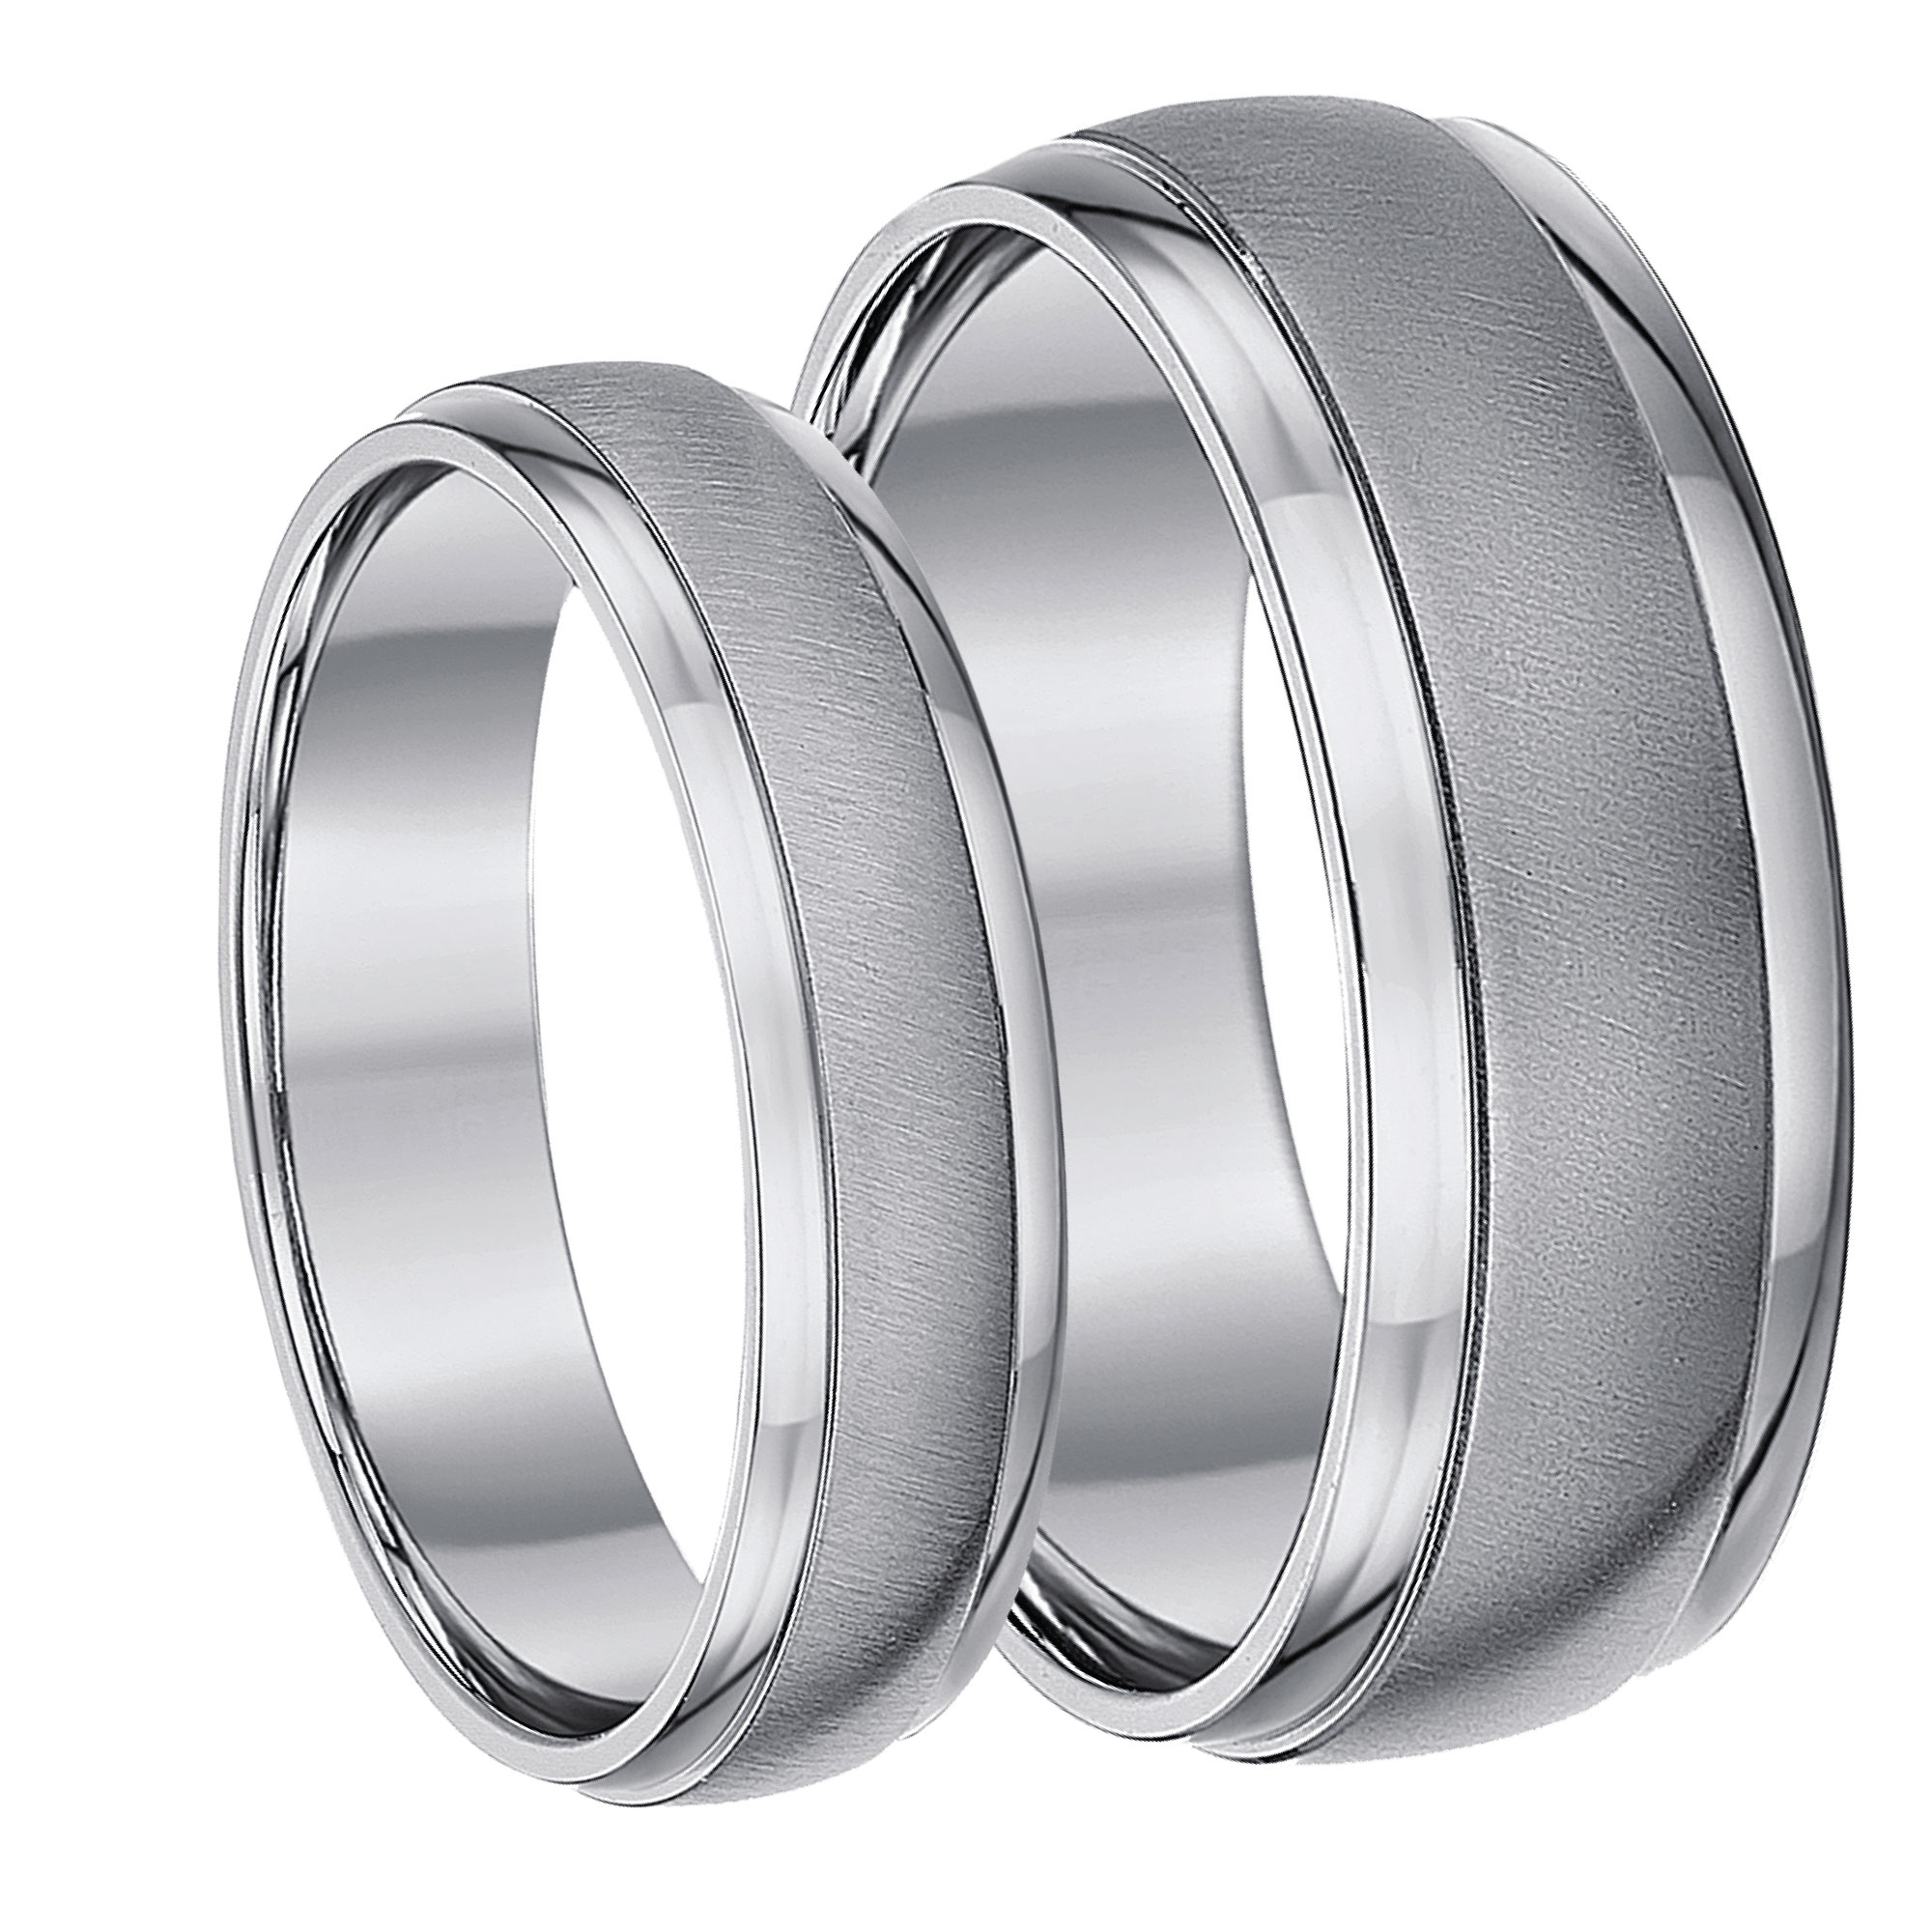 Titanium Matt and Polished Wedding Bands 5&7mm